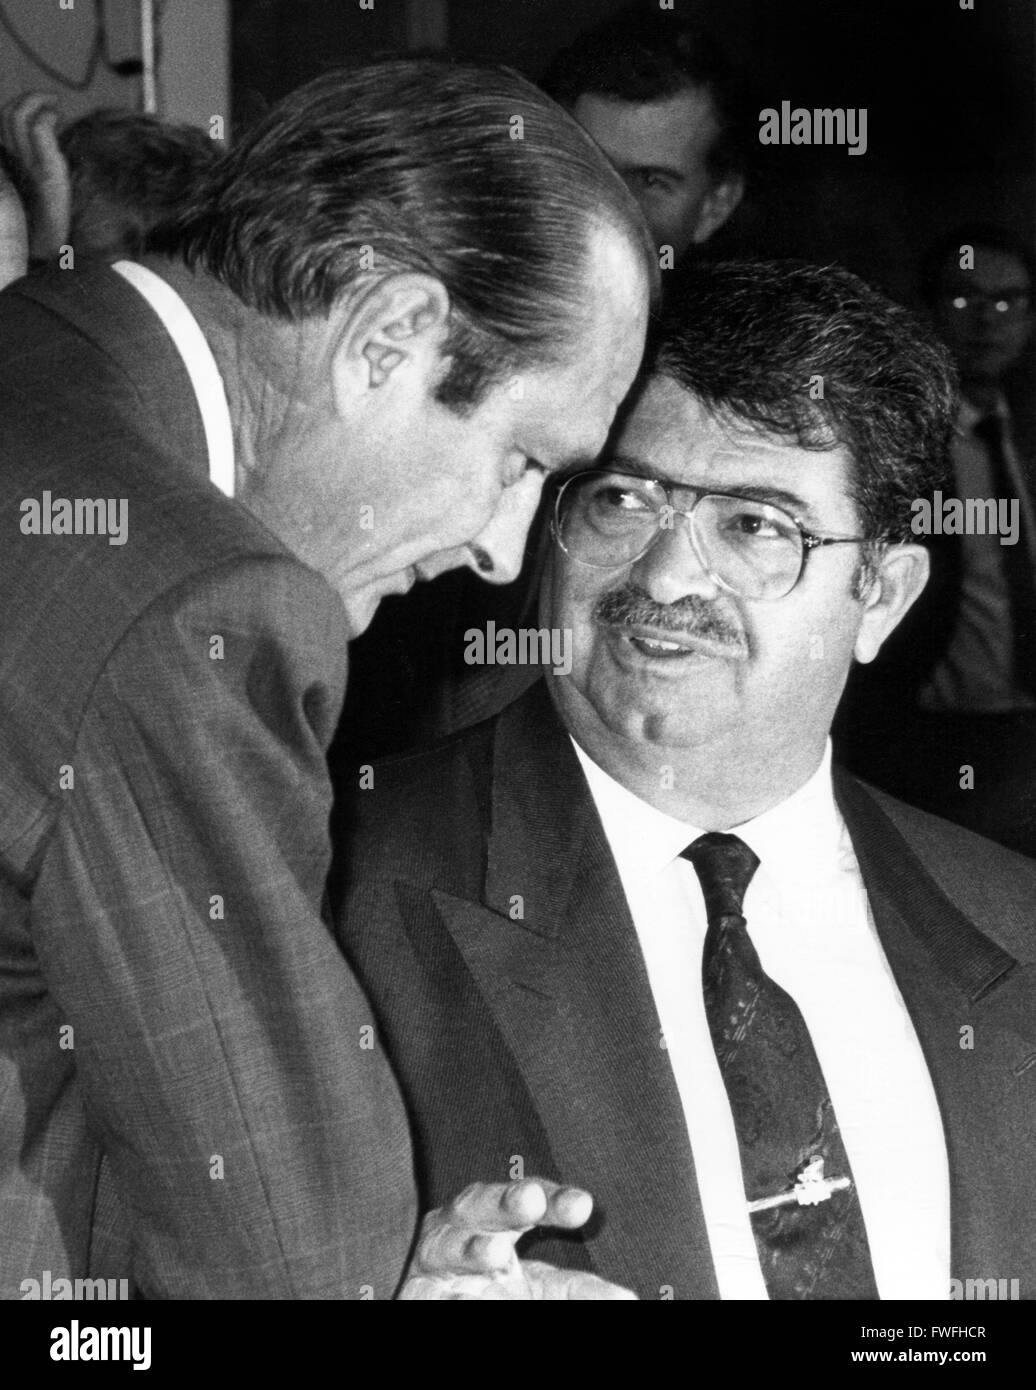 French prime minister Jacques Chirac (l) and the turkish prime minister Turgut Oezal (r) in September 1987 in Bonn - Stock Image